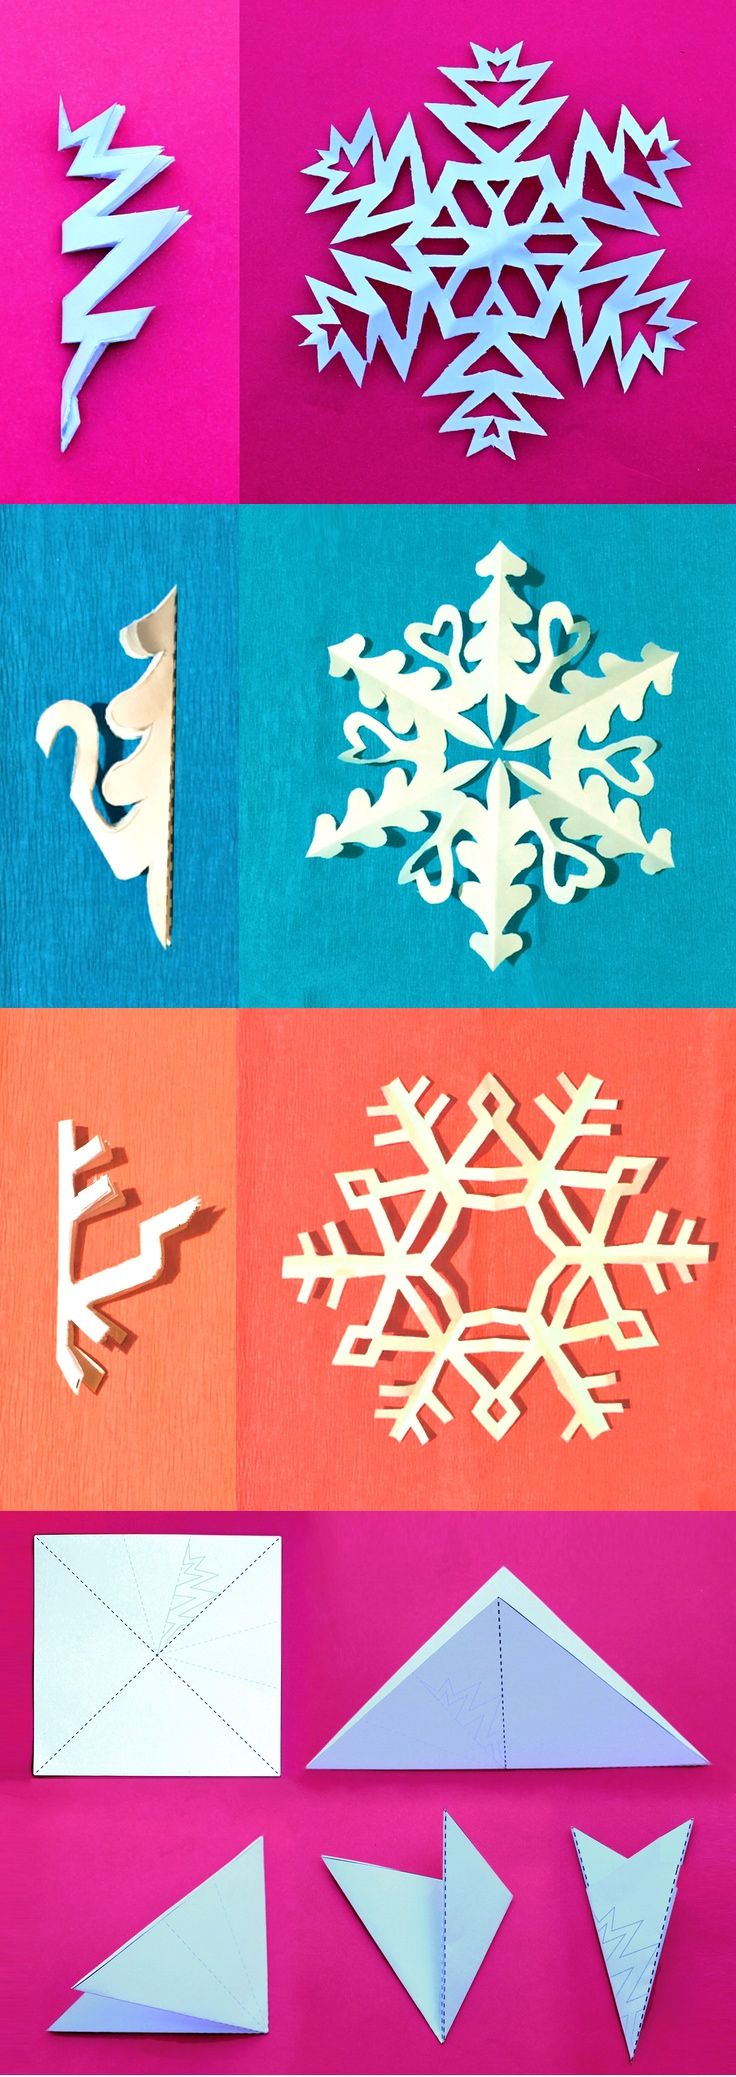 Snowflake templates at happythougciuronne de papierht.co.uk https://happythought.co.uk/product/holiday-craft-activity-printables